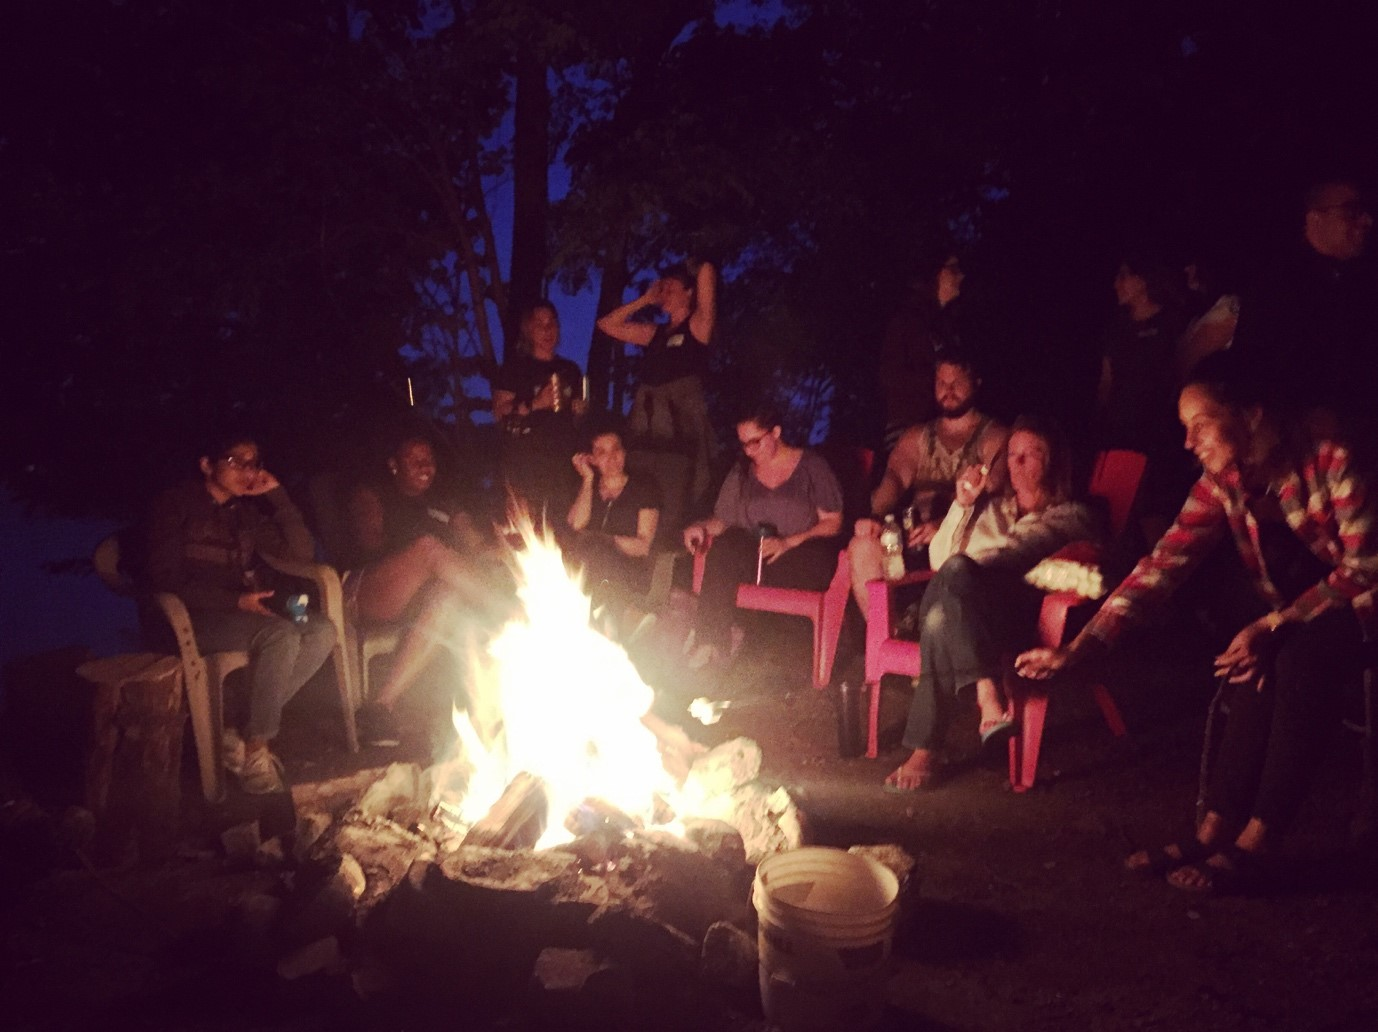 Campfire pic at Lakeshift